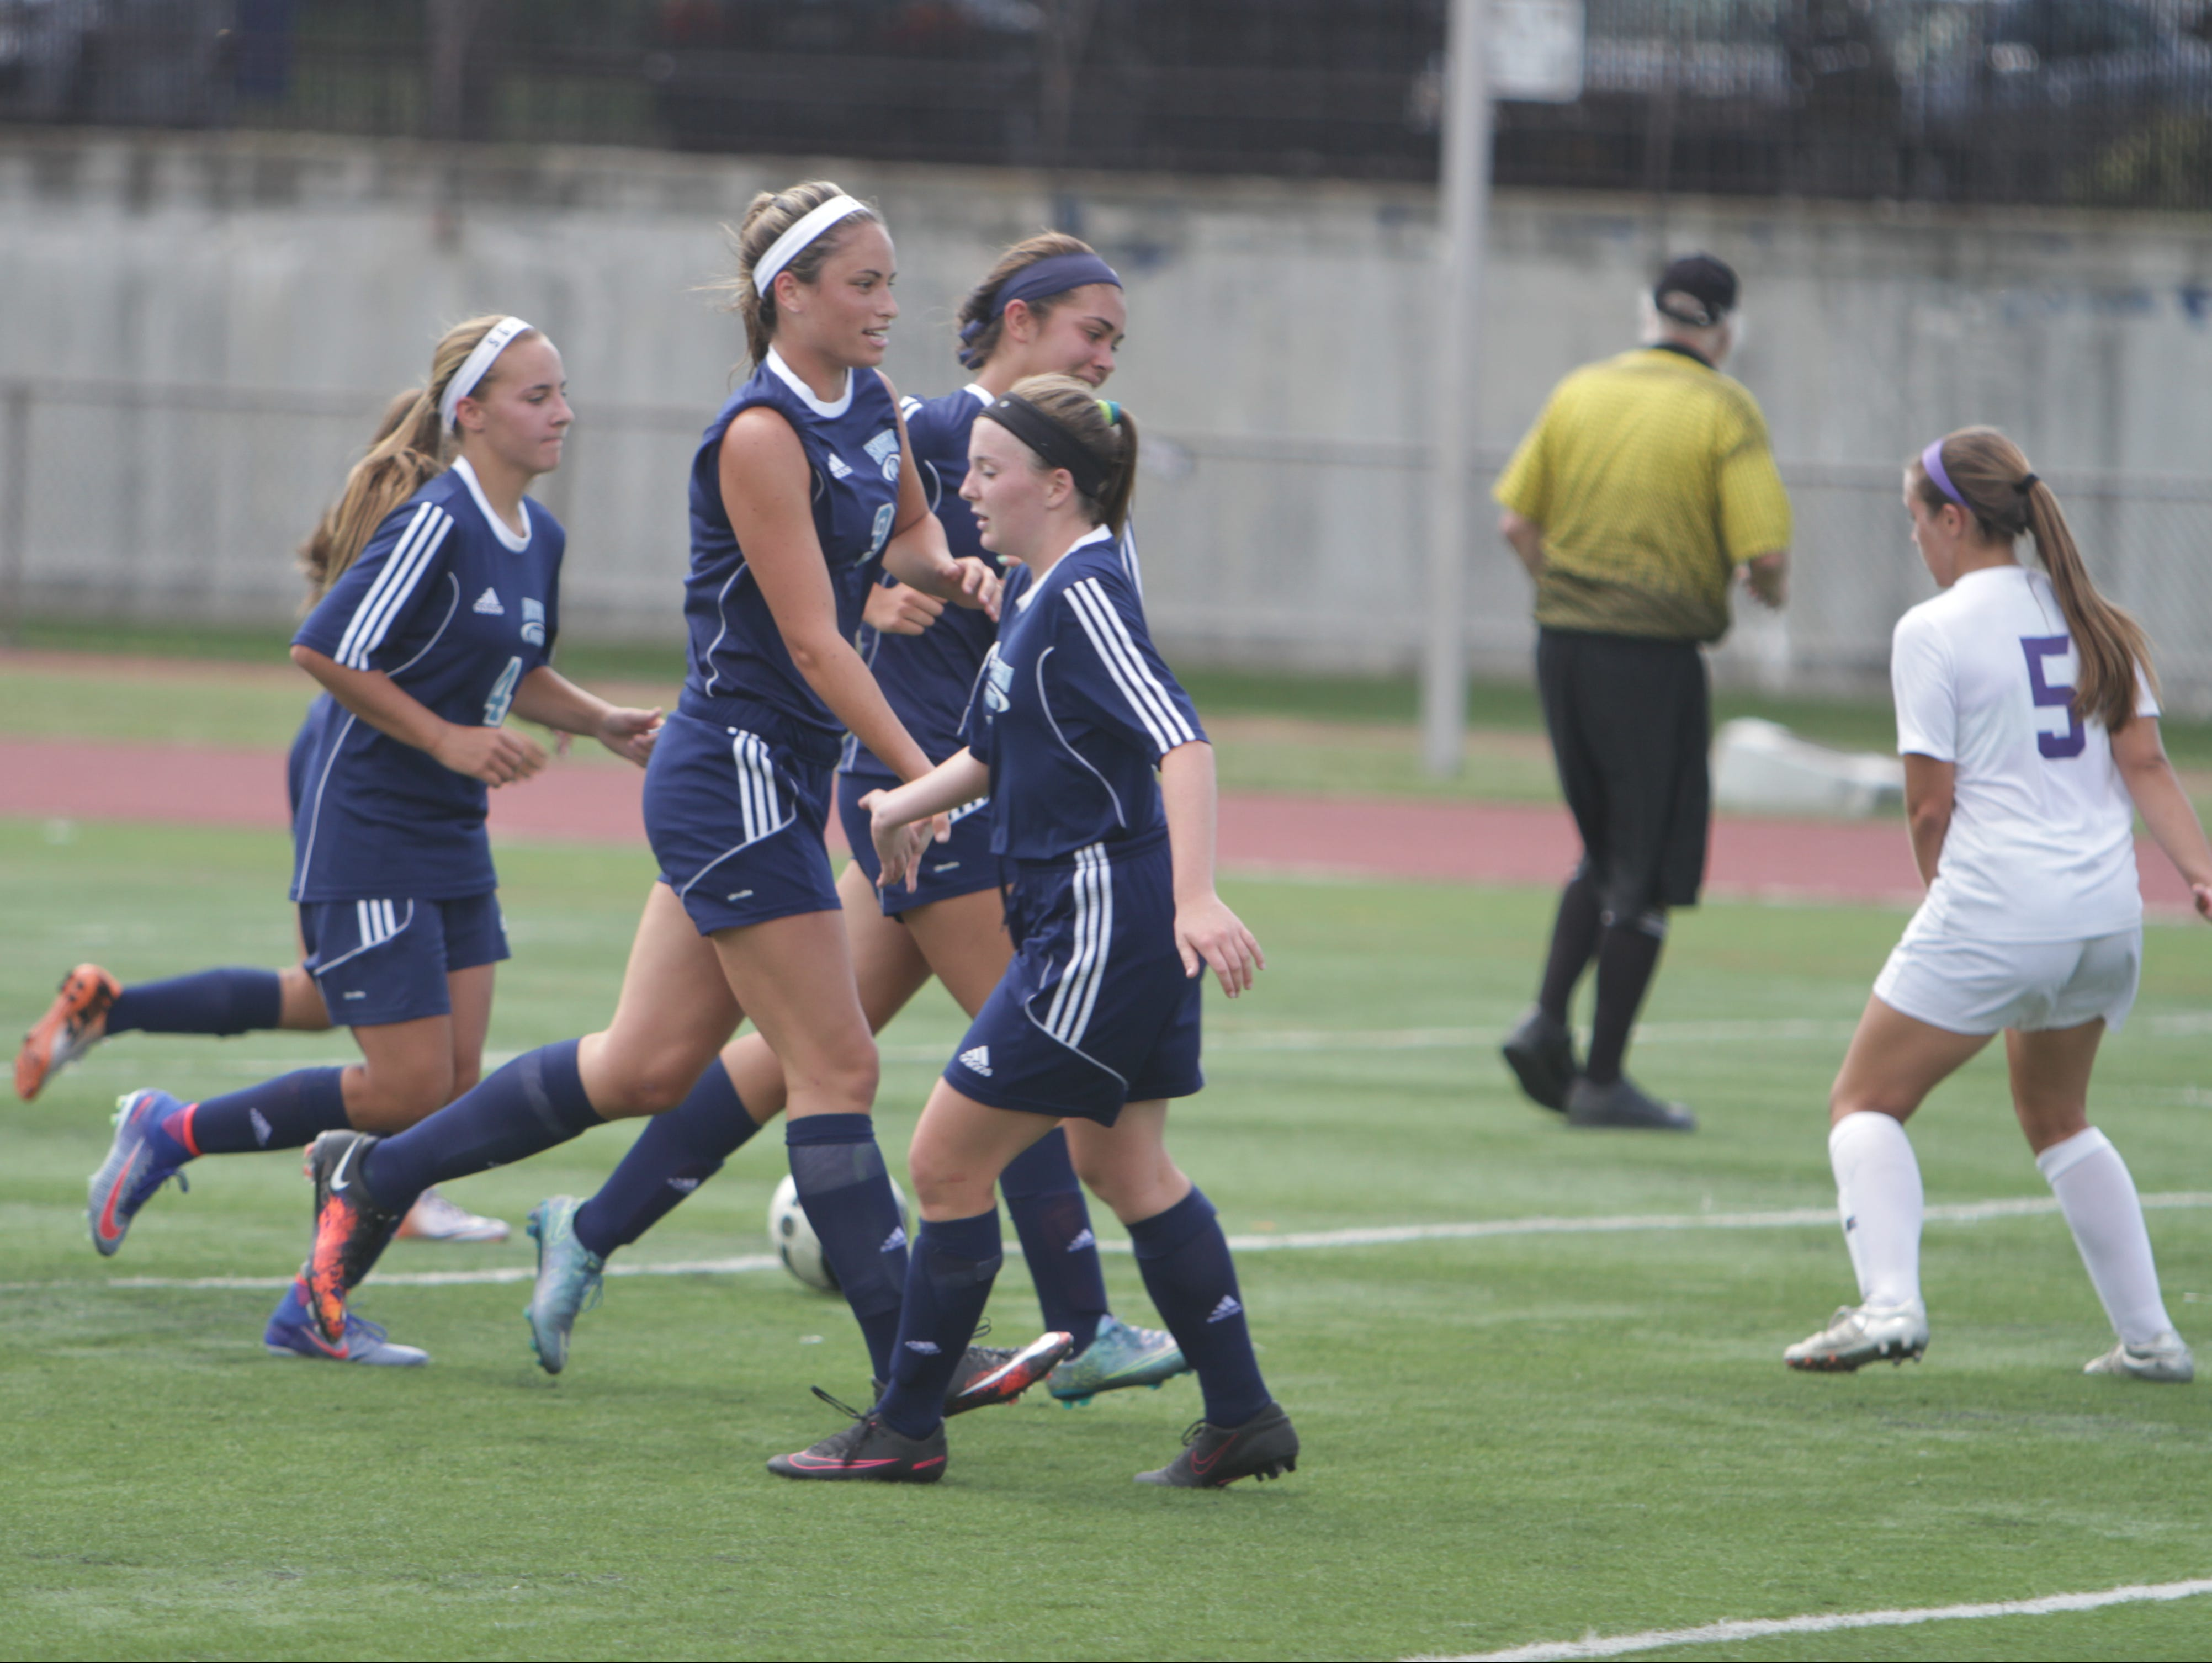 Suffern celebrates after a Kyra Greenbaum's first half goal during a Section 1 girls soccer game between New Rochelle and Suffern at New Rochelle High School Friday, Sept. 2. Suffern won 4-1.